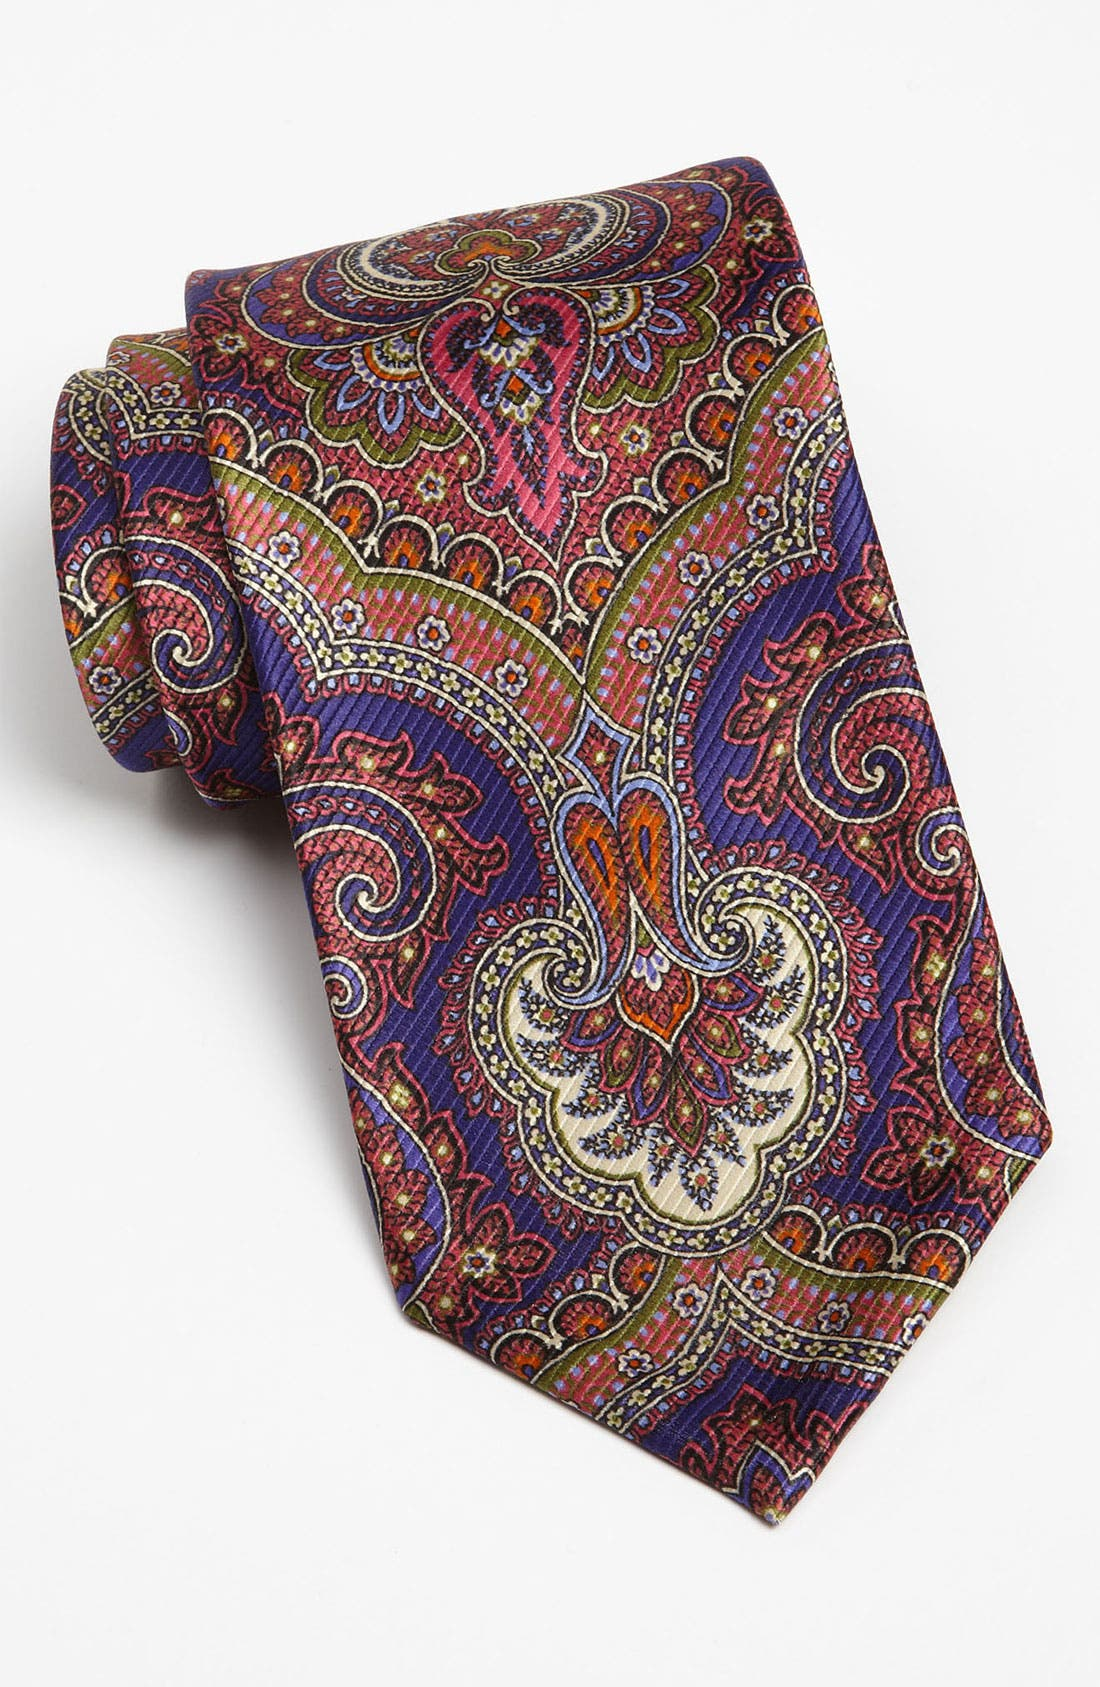 Alternate Image 1 Selected - Robert Talbott 'Sevenfold' Silk Tie (Limited Edition)